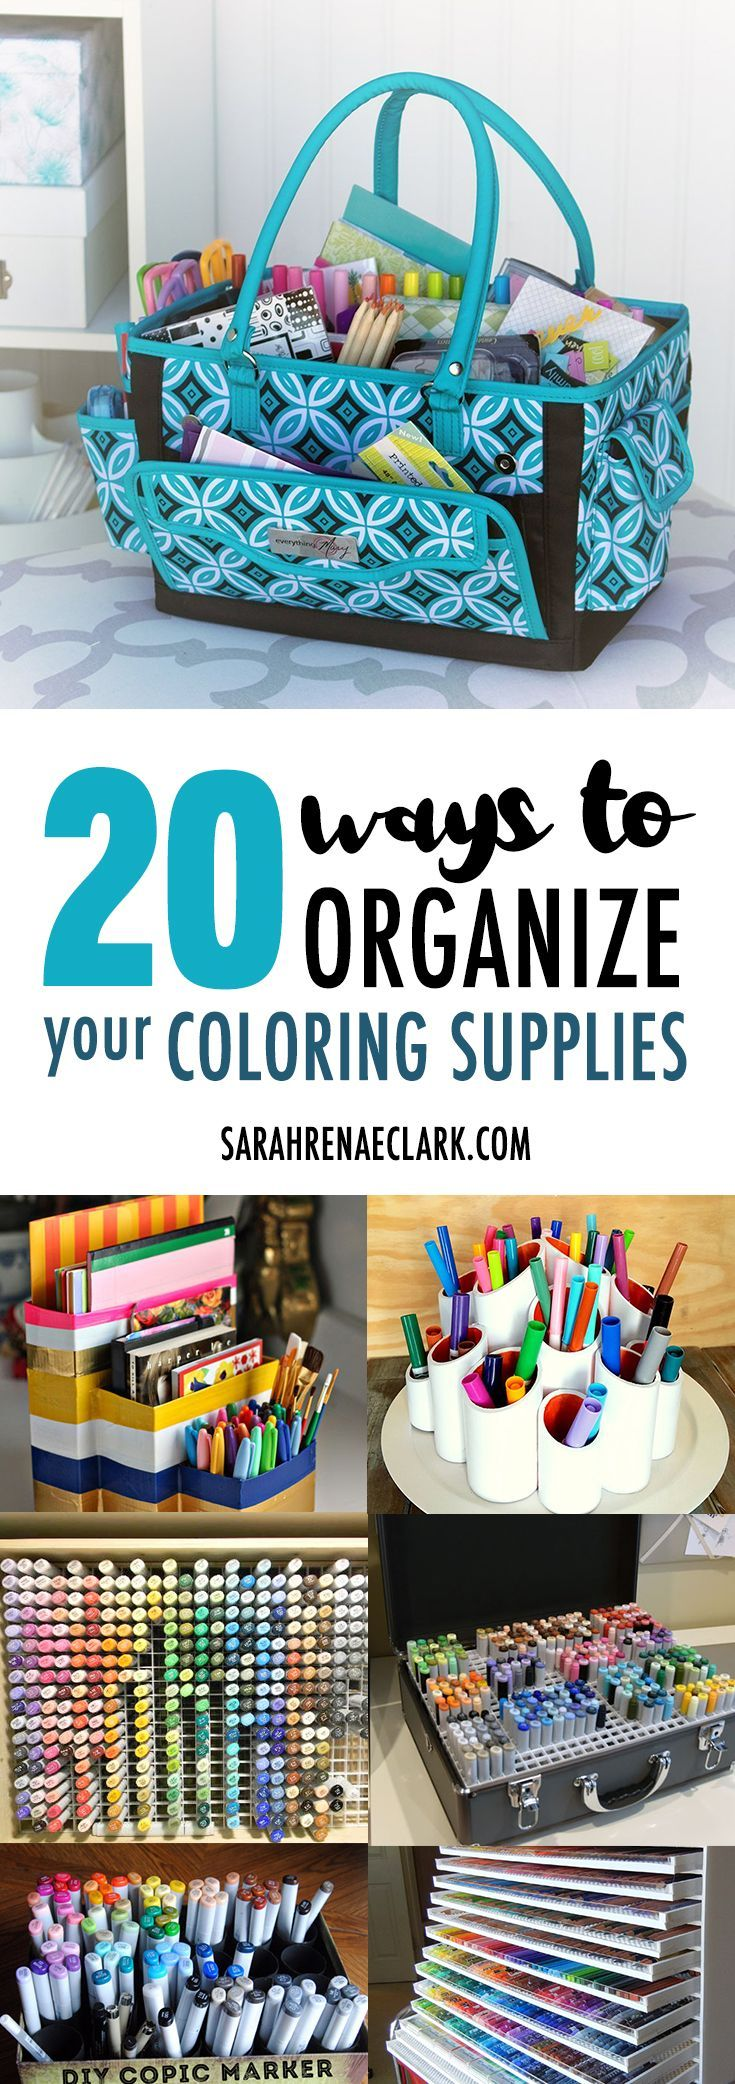 20 Clever Ways to Organize Your Coloring Supplies   Pencil and Marker Storage Inspiration